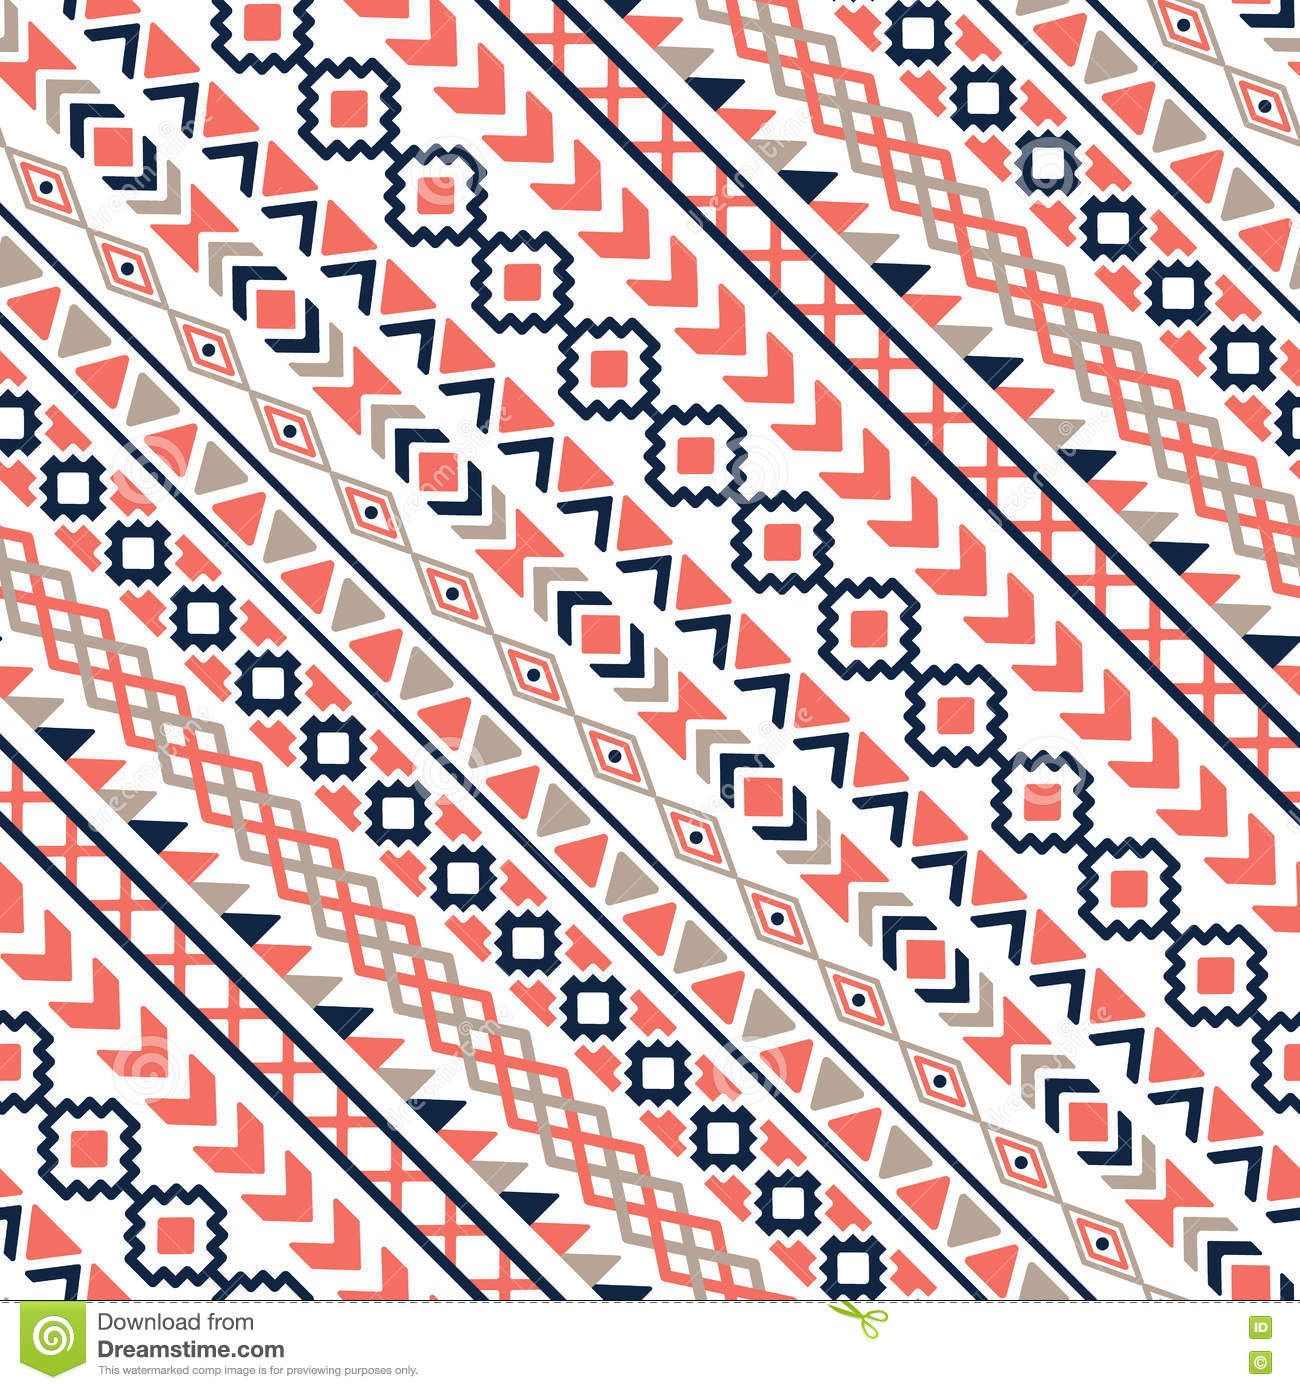 Navajo Patterns Awesome Inspiration Ideas